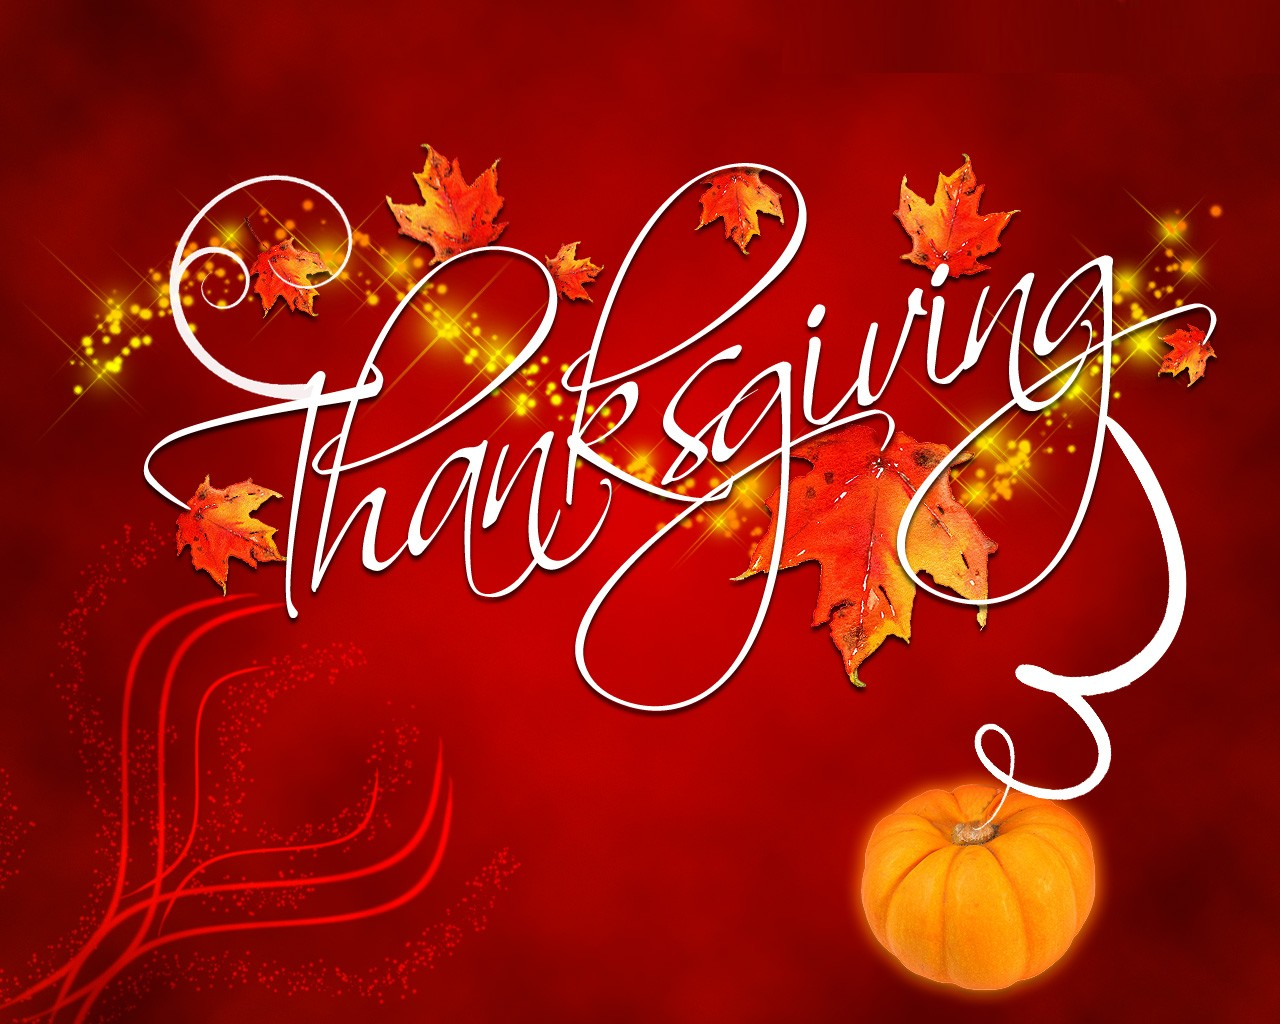 http://www.turnbacktogod.com/wp-content/uploads/2010/11/Happy-Thanksgiving-Day.jpg